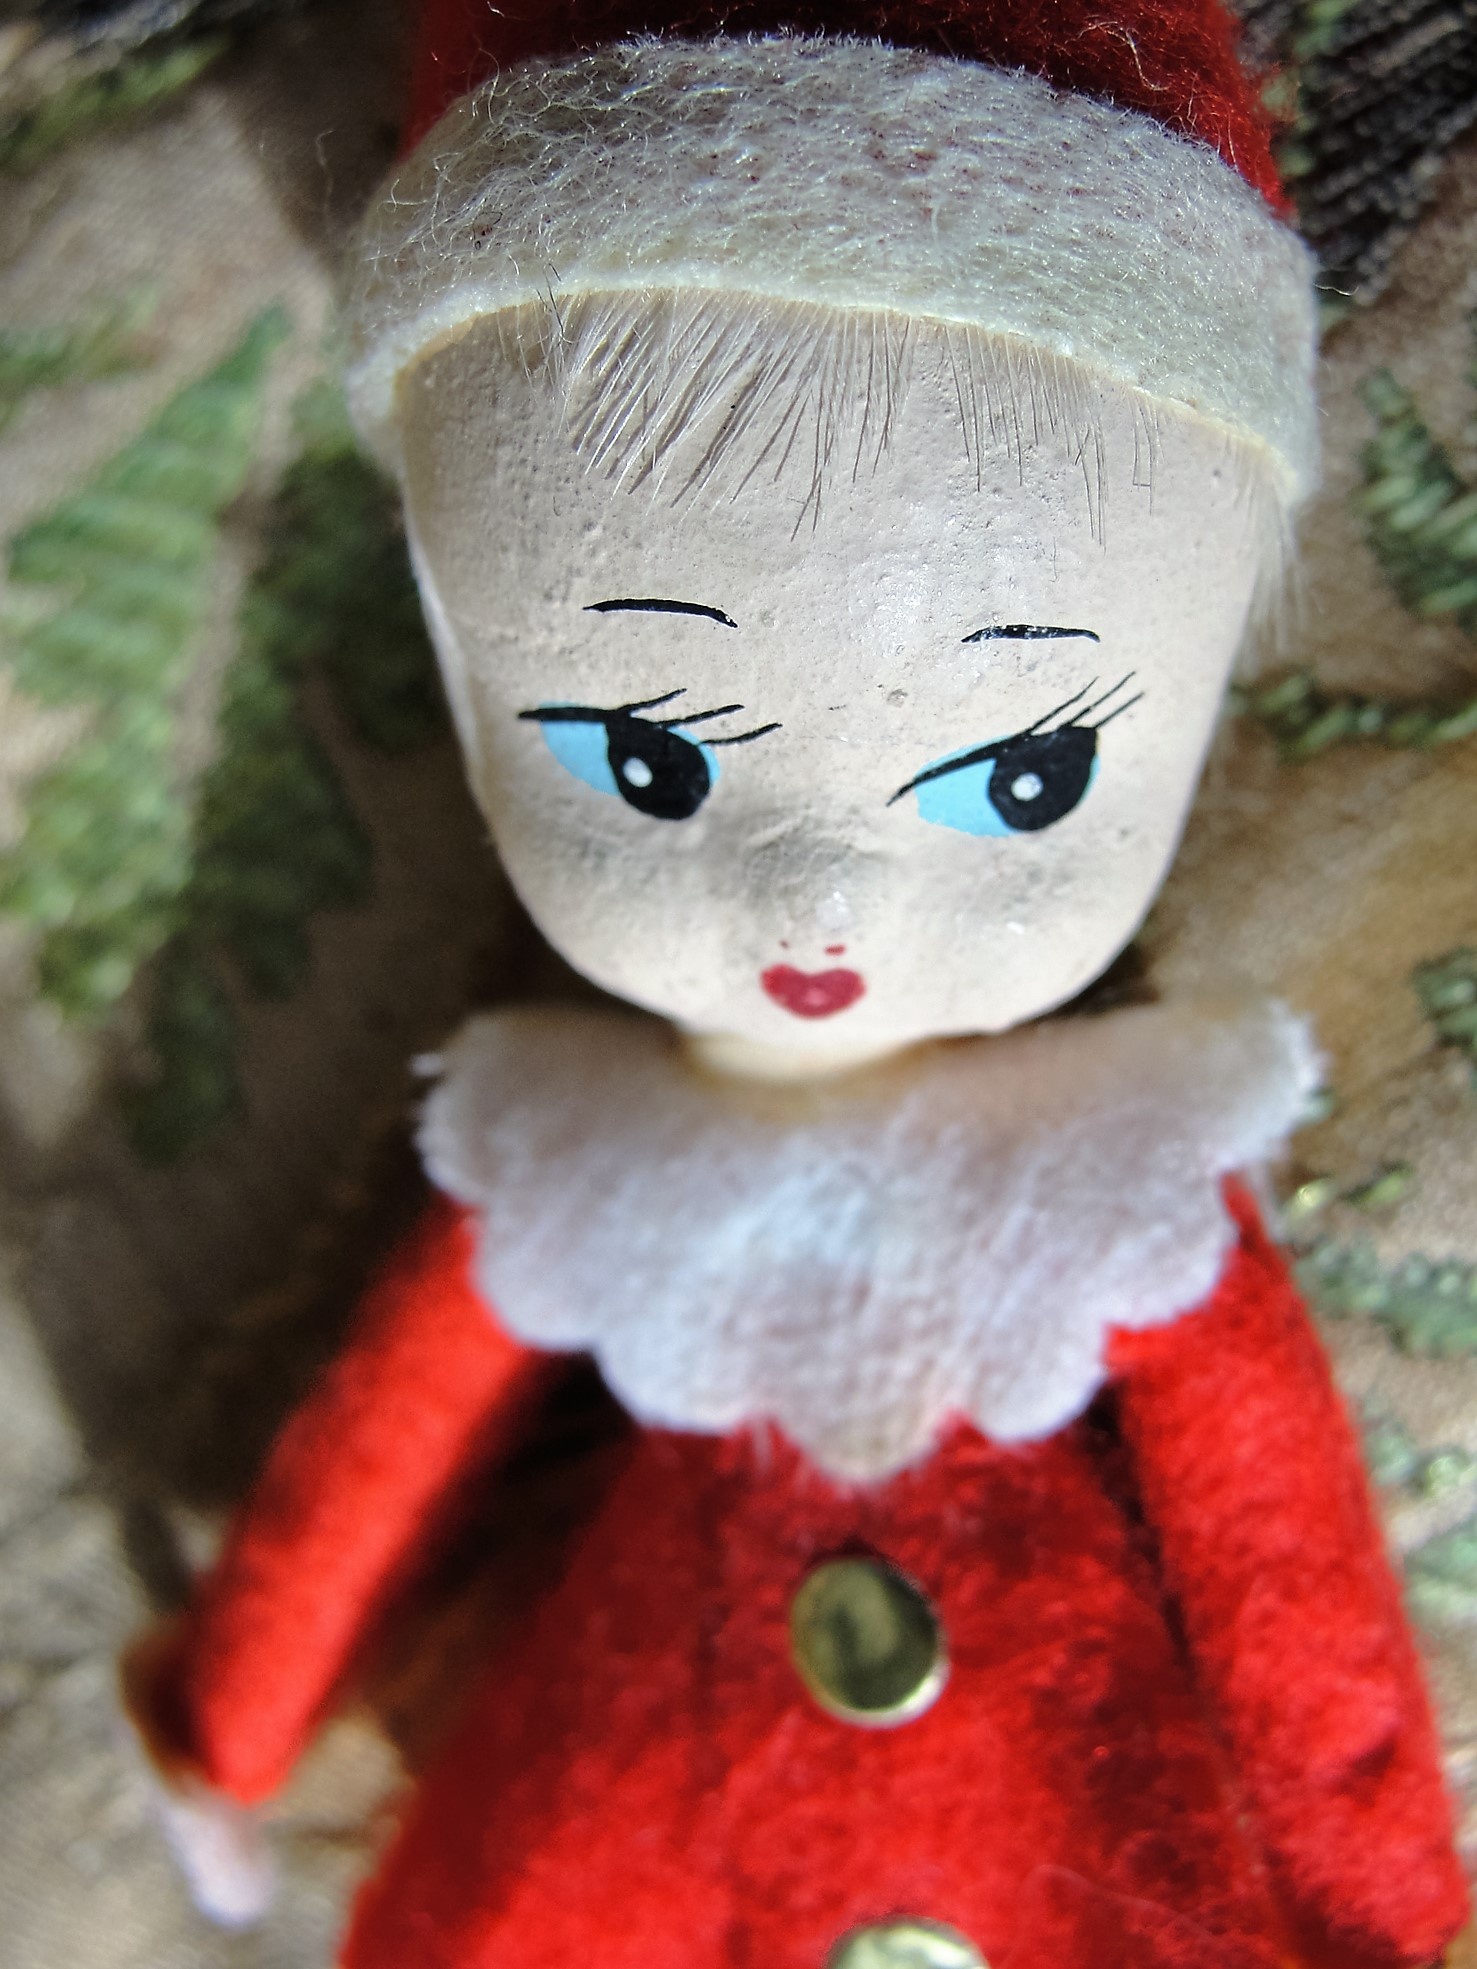 SWEET Vintage Poseable Pixie Girl Elf Ornament Bendable Wire Legs and Arms Vintage Japan Pixie Ornaments Kitchy Mid Century Christmas Decorations